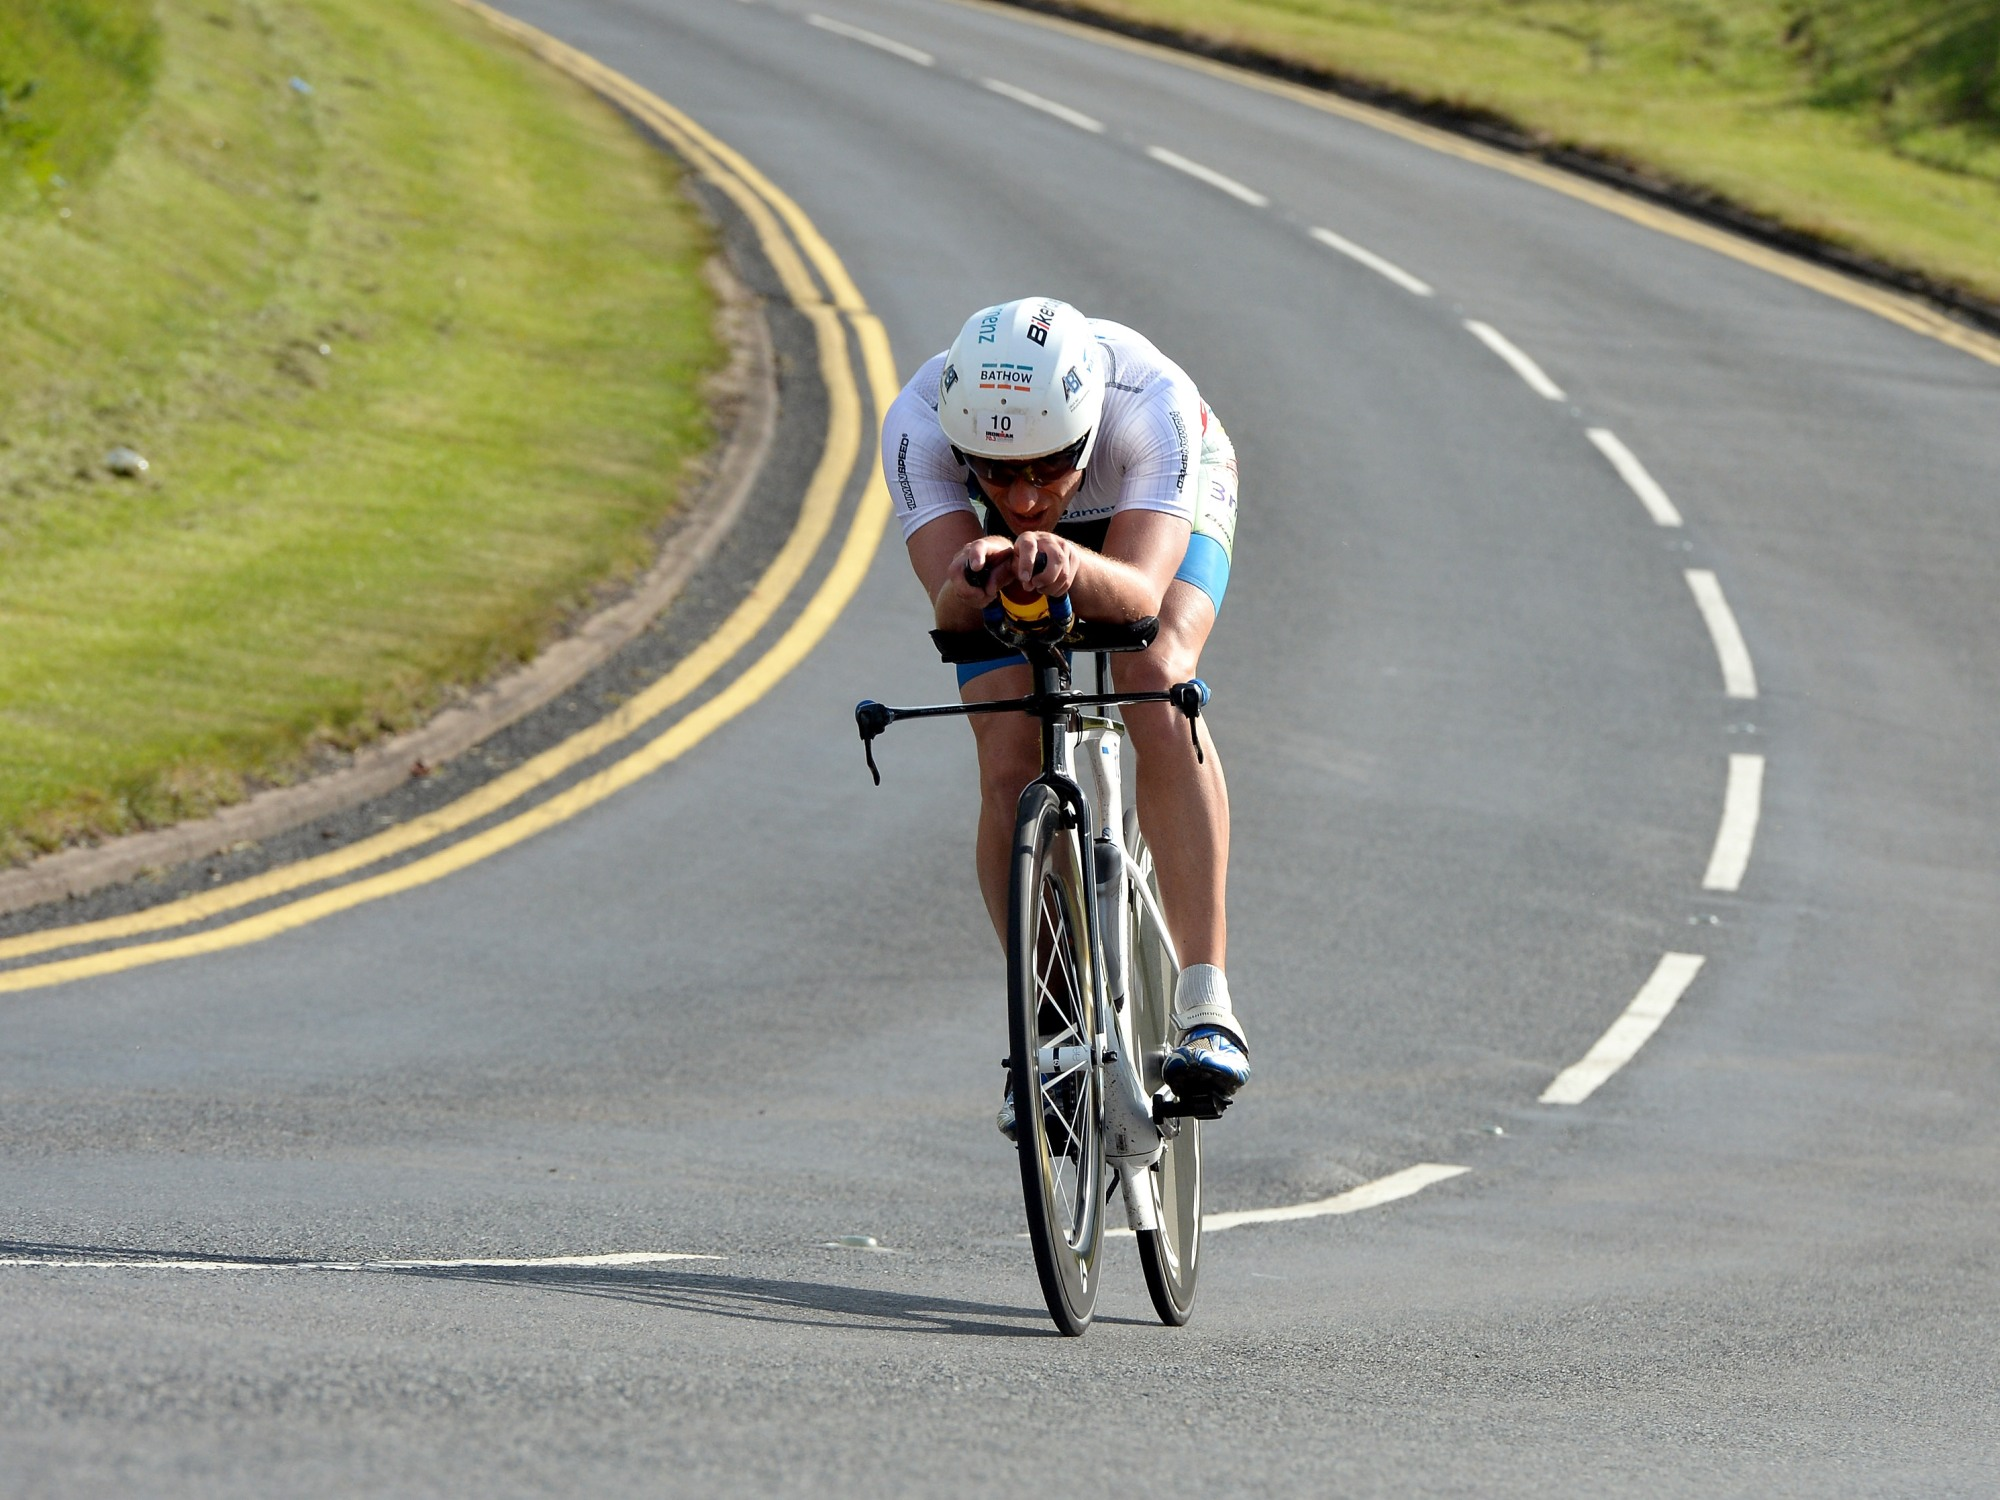 Staffordshire ironman bike course review